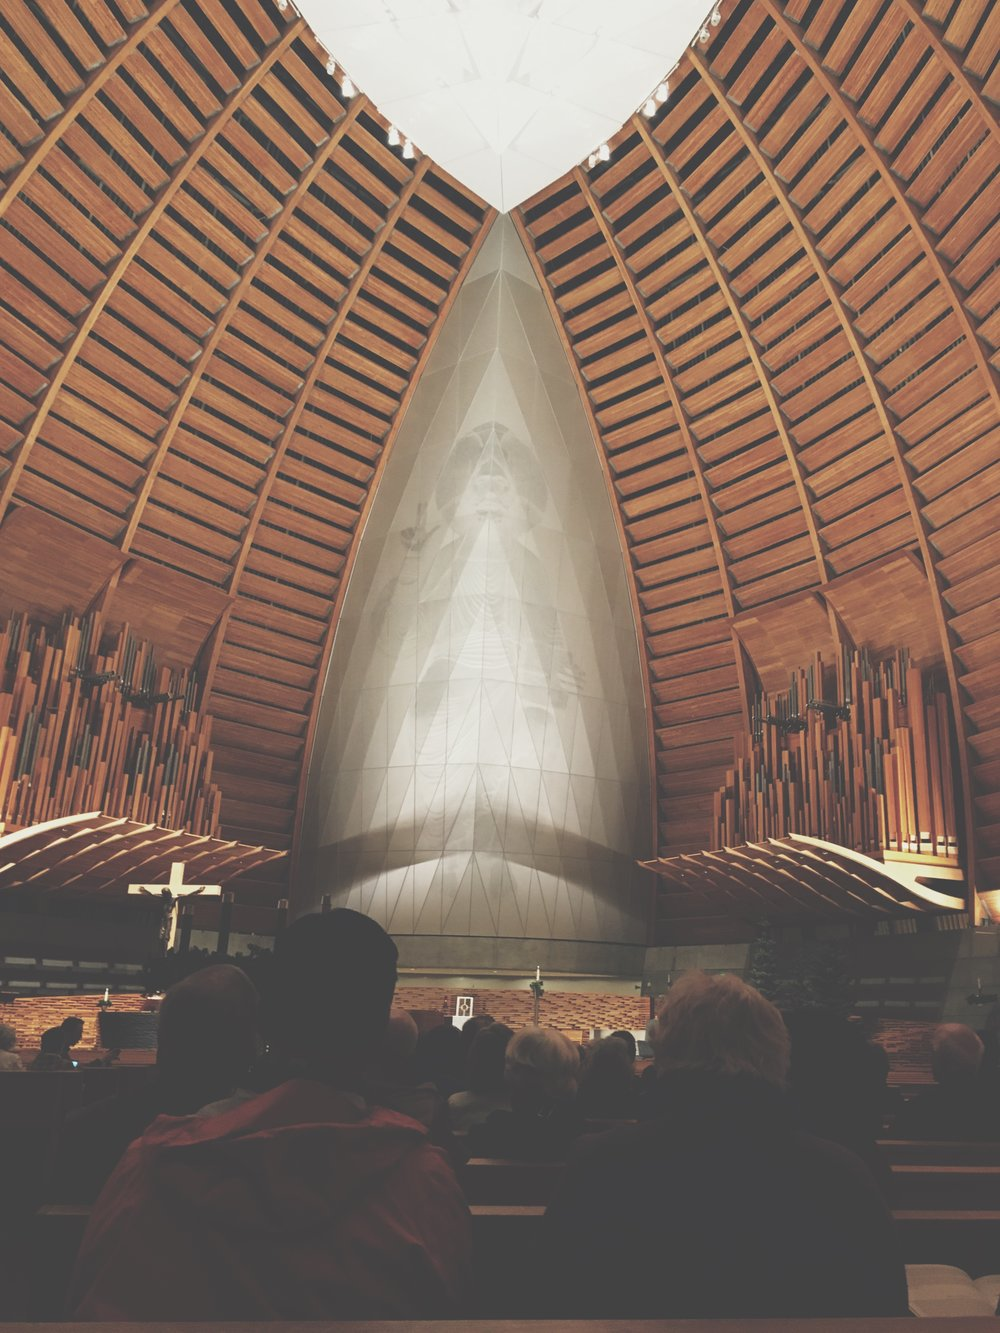 Cathedral of Christ the Light  (Oakland, California) on the evening of Jonathan Dimmock's performance, with organ pipes visible on the left and right.